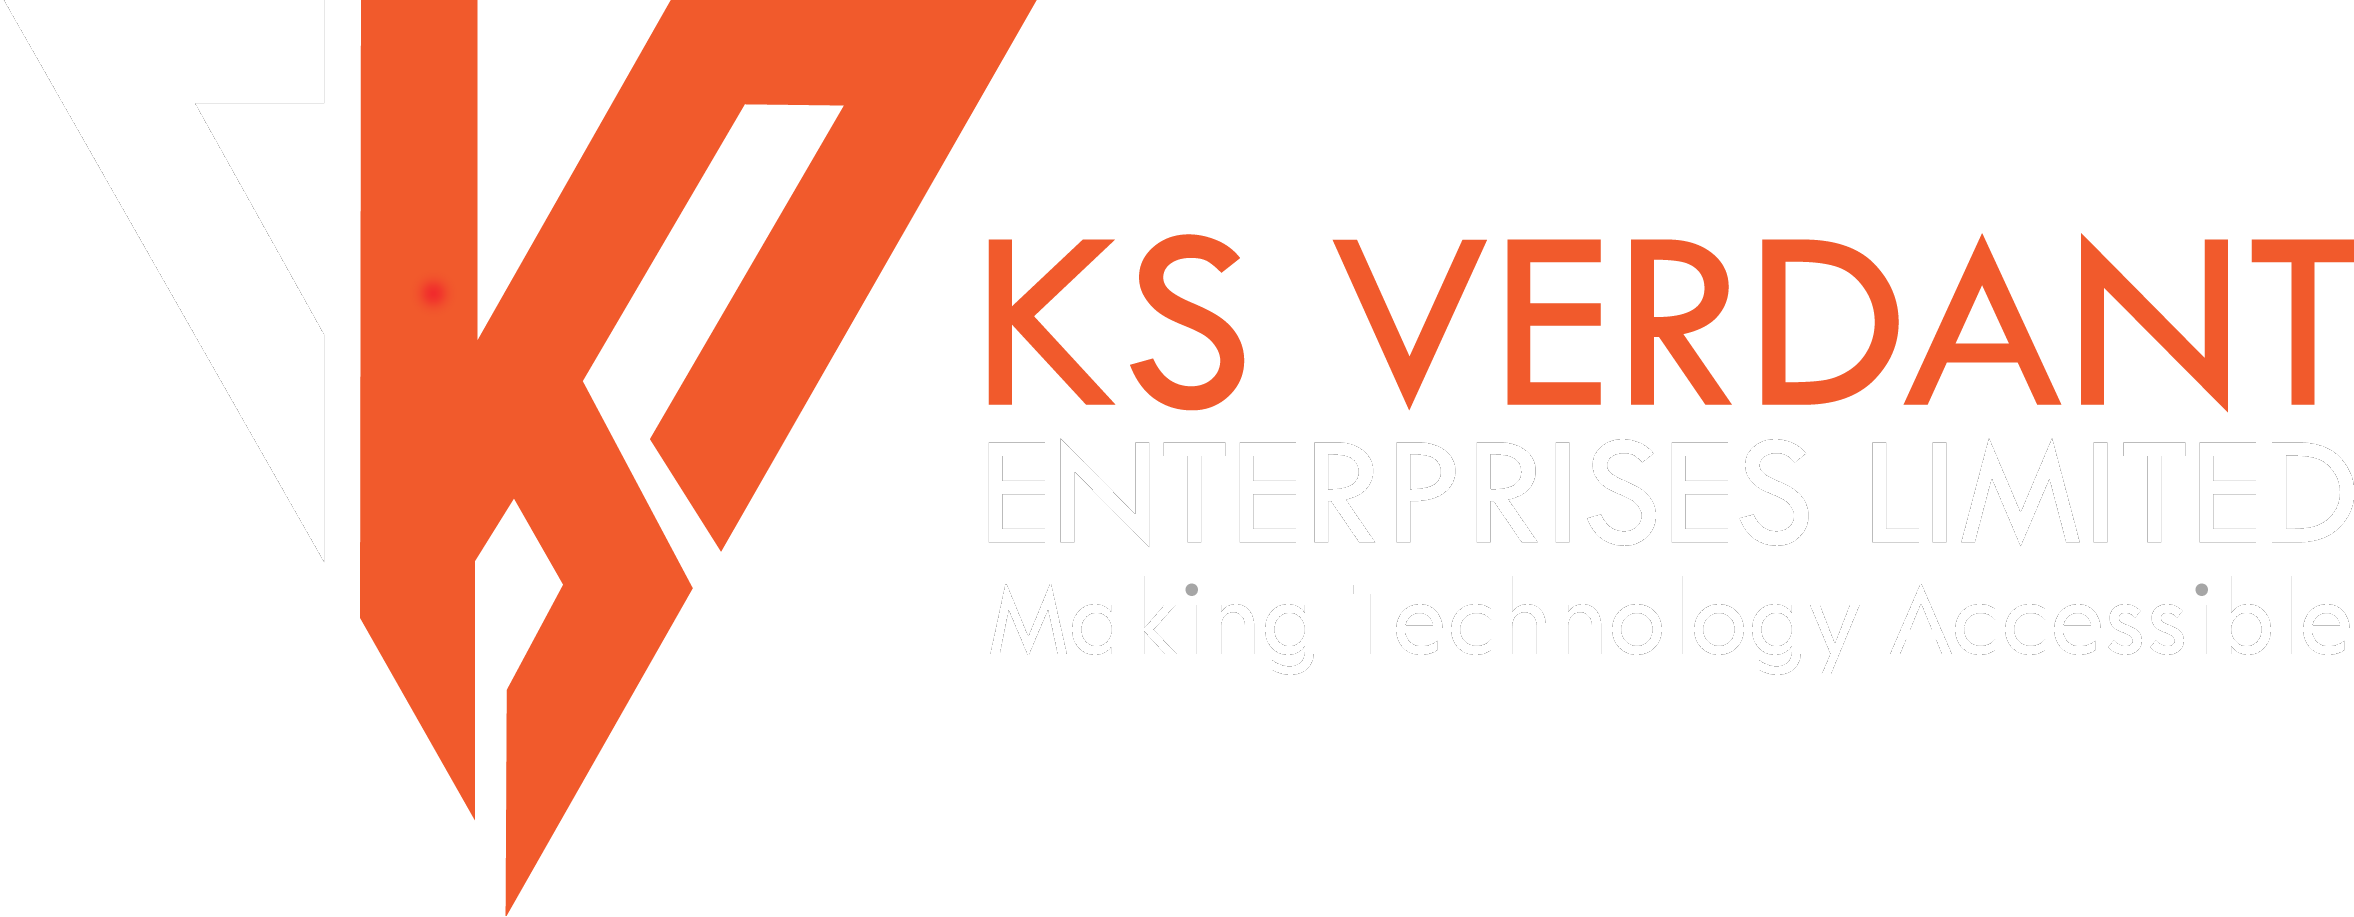 KS Verdant Enterprises Limited